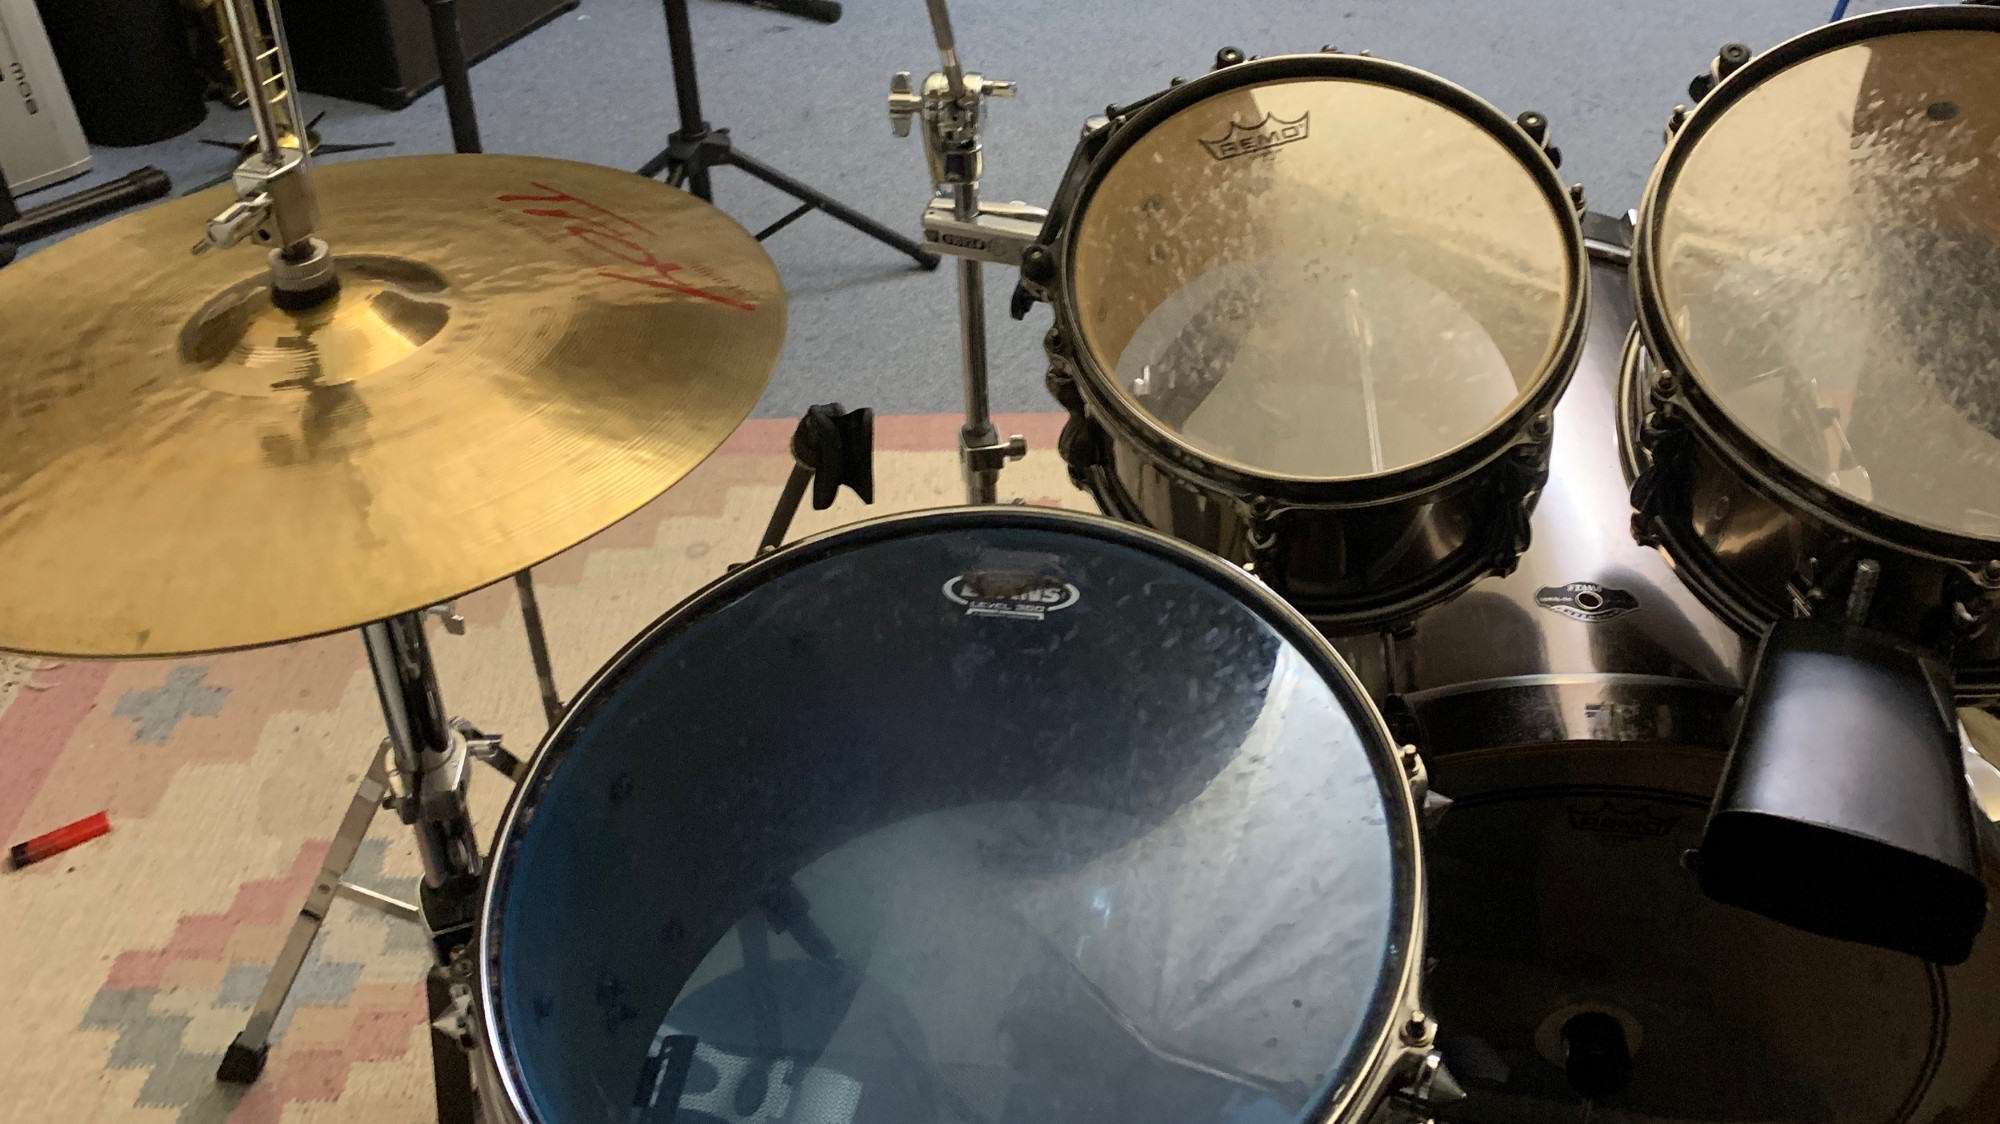 Drummer's view